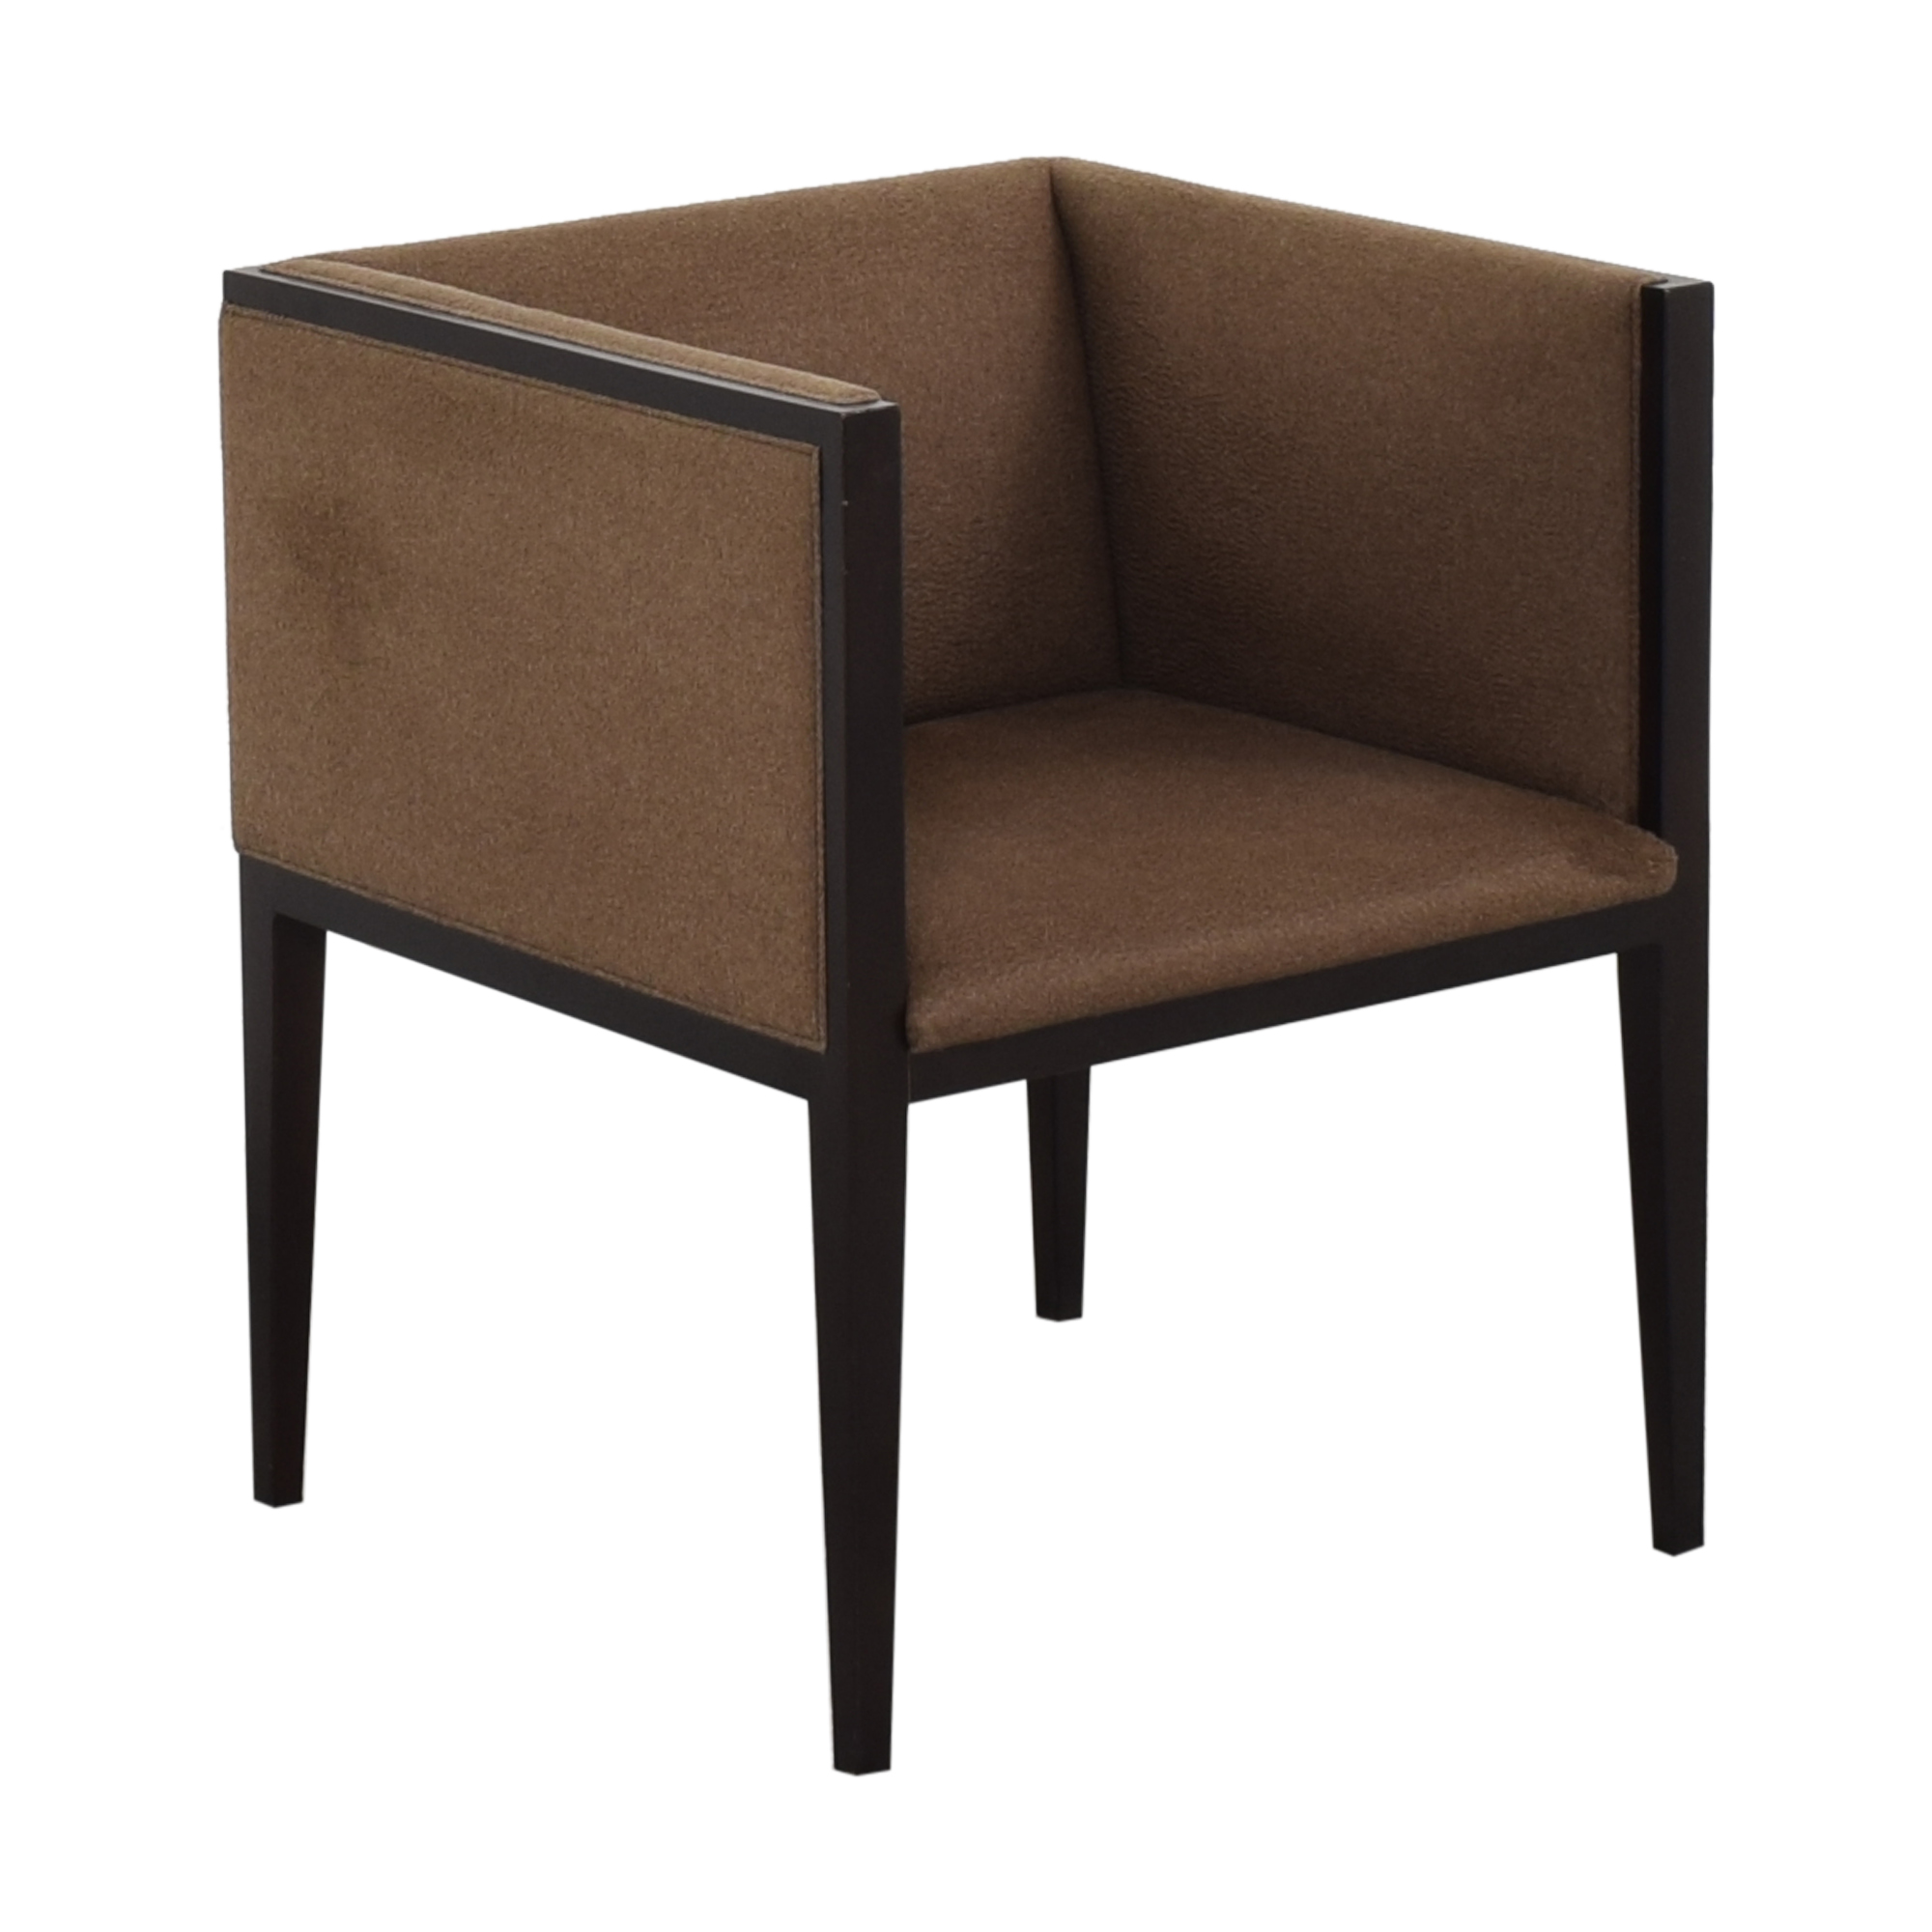 buy Hudson Furniture & Bedding Tuxedo Accent Chair Hudson Furniture & Bedding Chairs